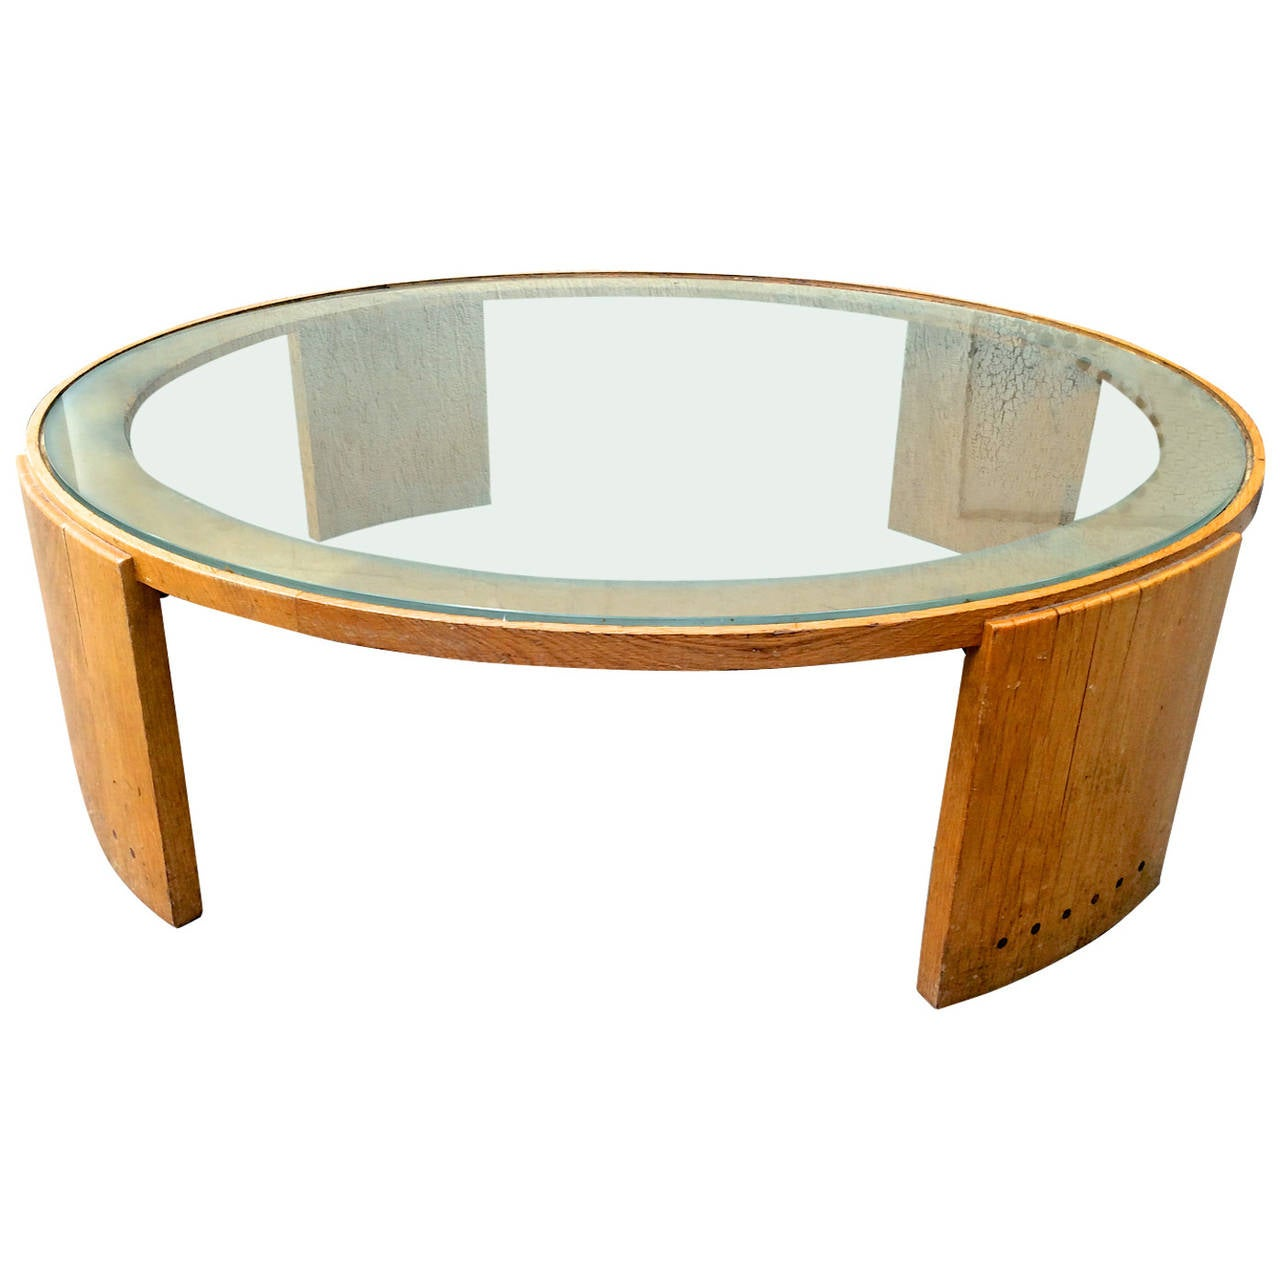 Jacques adnet very large round coffee table in oak and glass top at 1stdibs Glass top for coffee table